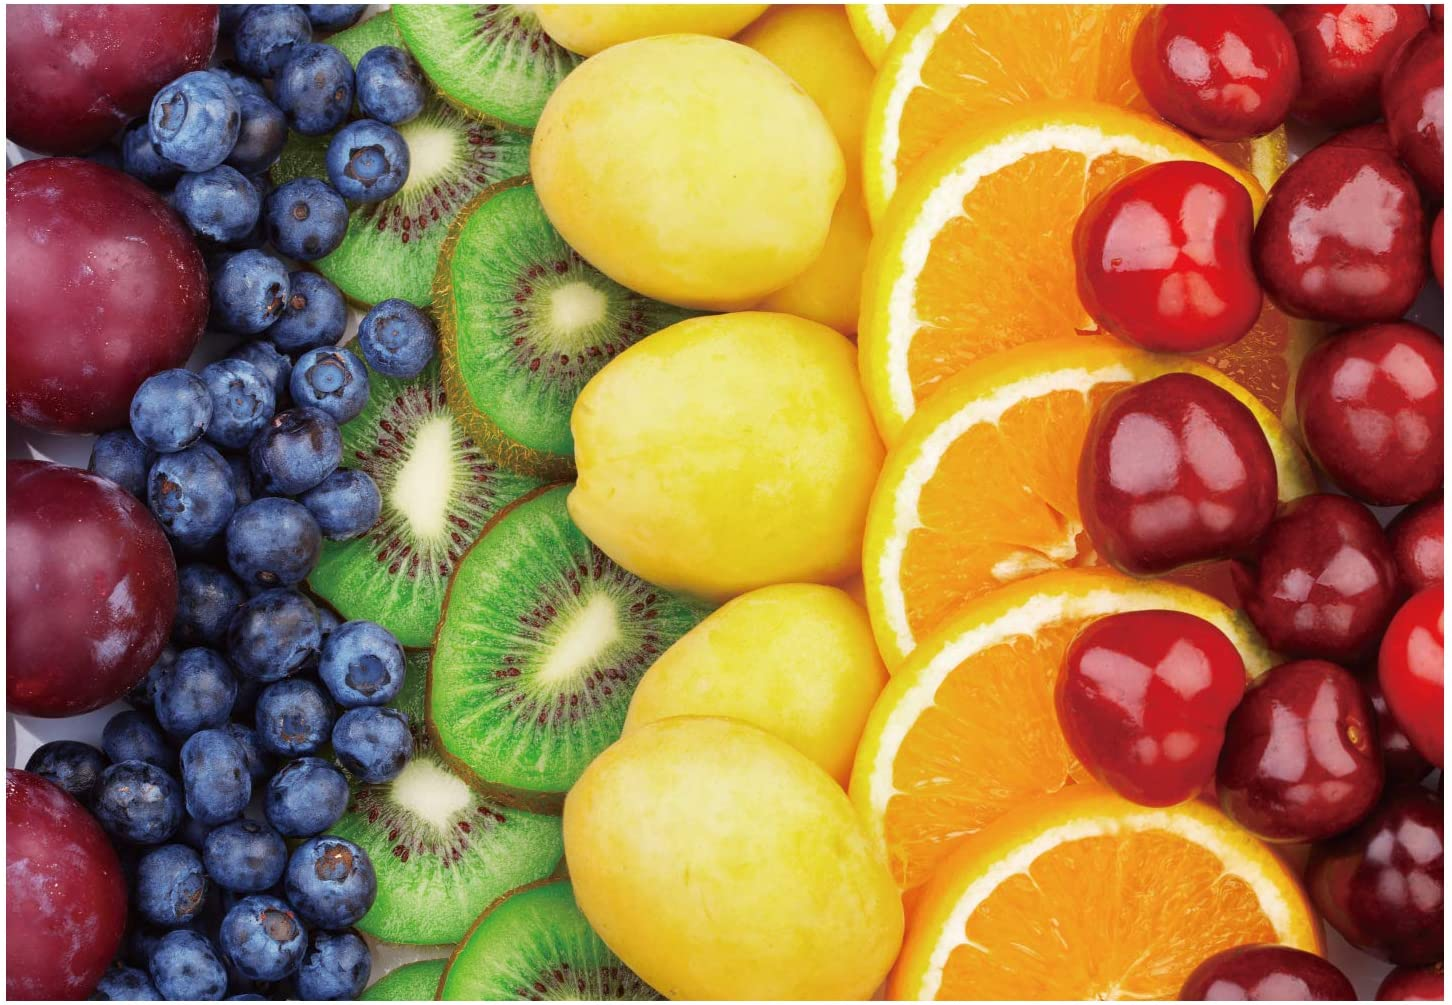 Jigsaw Puzzles 1000 Piece Fruit Large Adult Jigsaw, Fun Family Game Intellective Educational Toy,Unique Design DIY Home Decoration